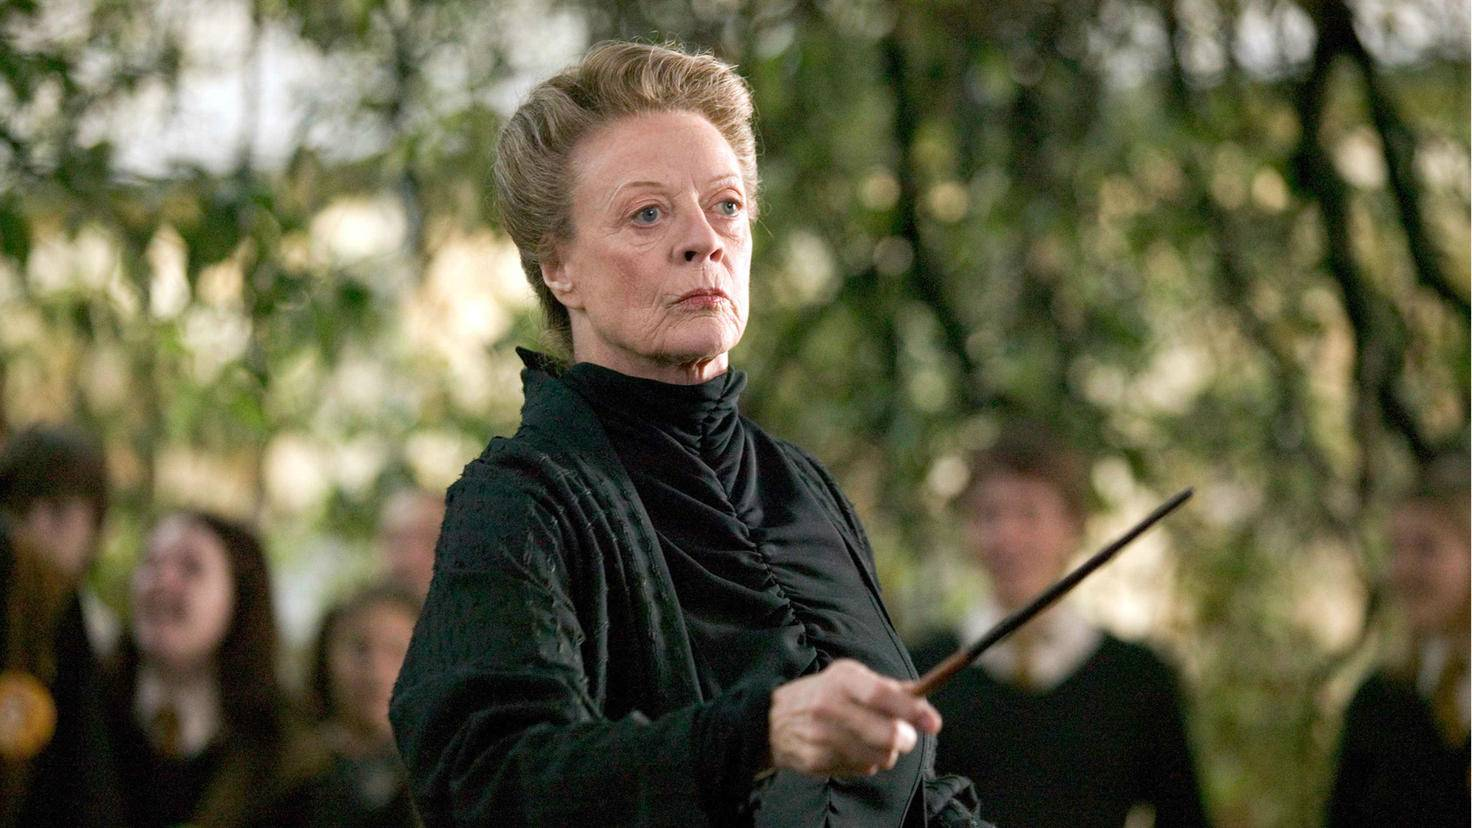 Harry Potter feuerkelch mcgonagall